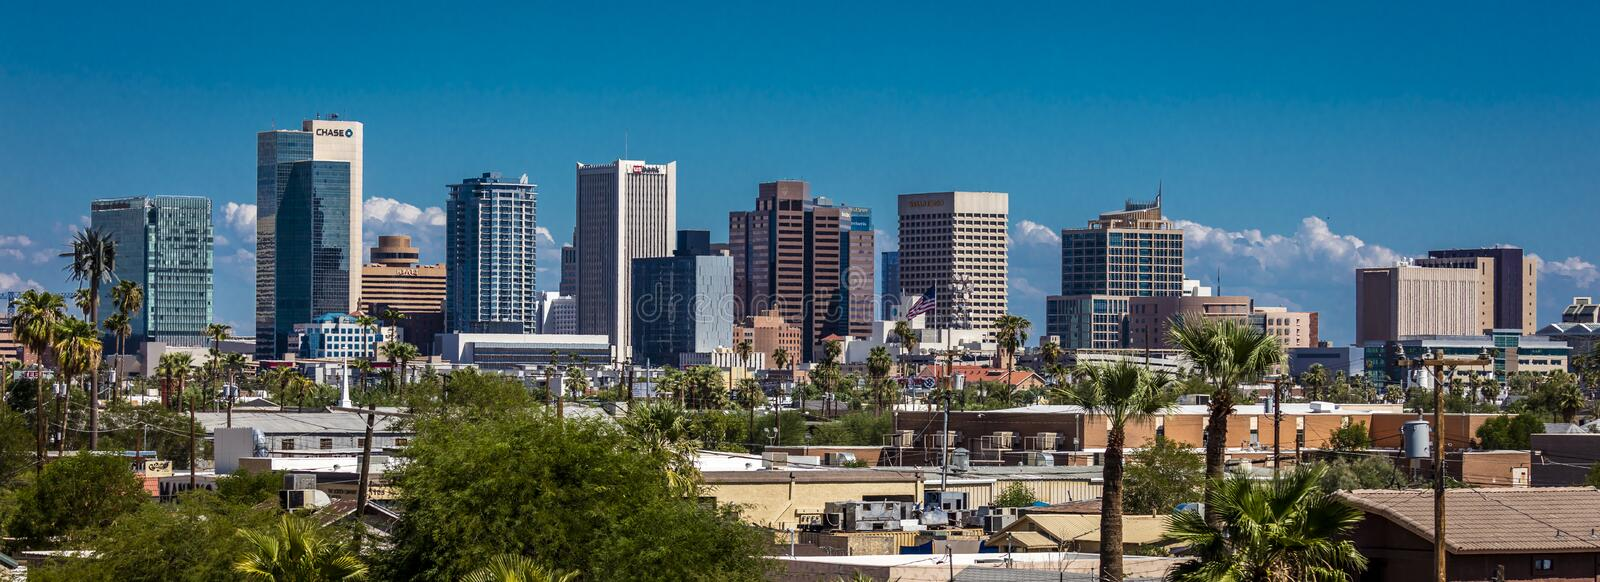 AUGUST 23, 2017 - PHOENIX ARIZONA - Panoramic skyline view of Phoenix. House, Blue stock images